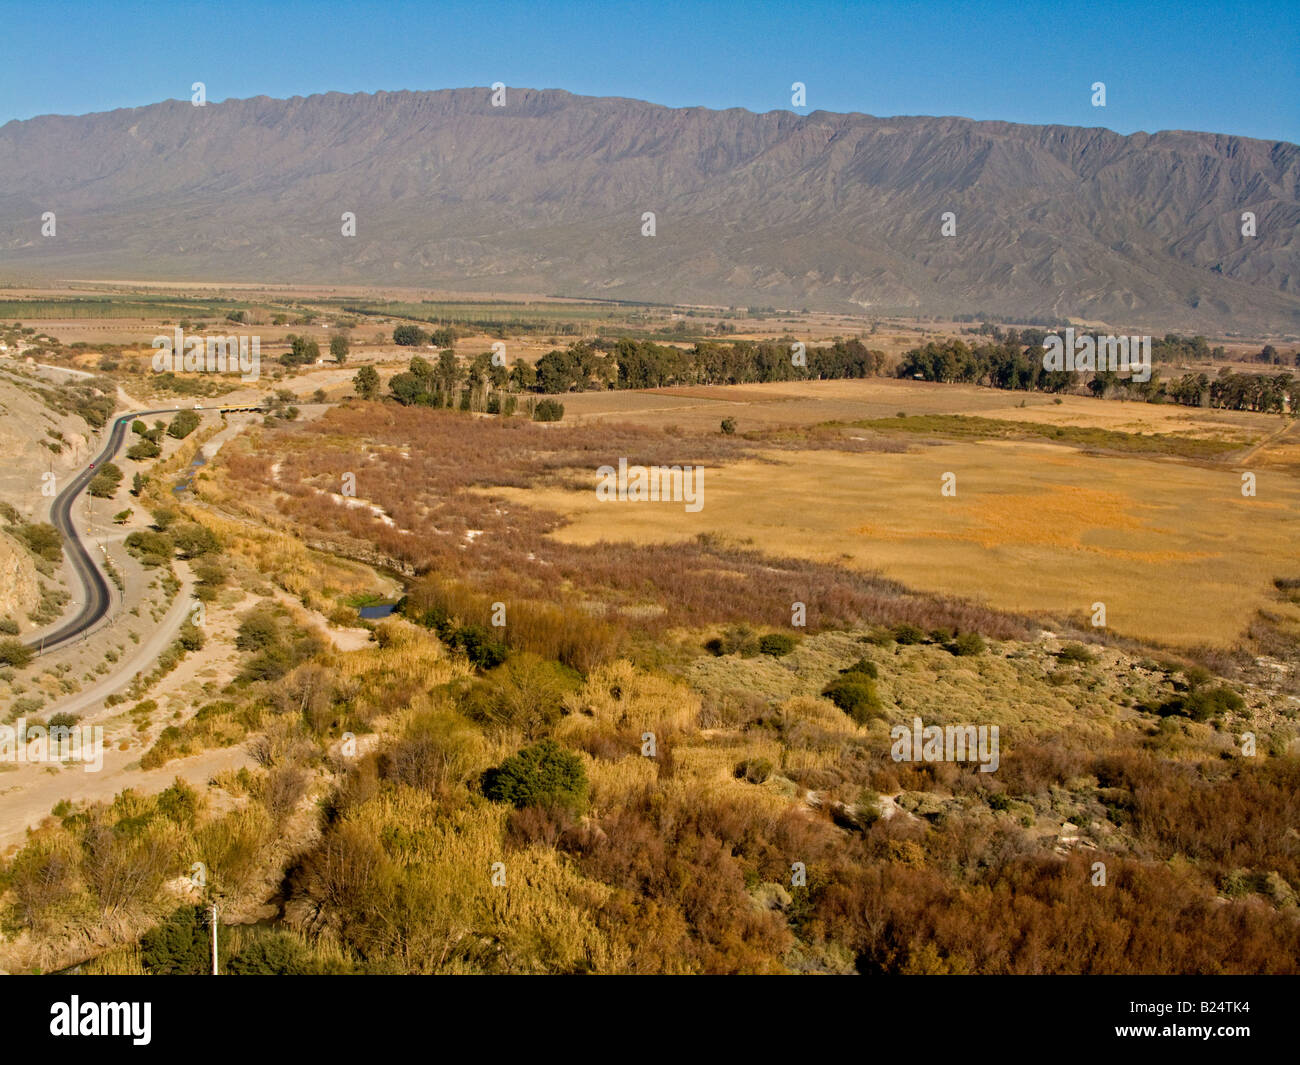 Humid grassland paddocks with a route and Precordillera in the background, in their winter aspect, Zonda, San Juan. - Stock Image